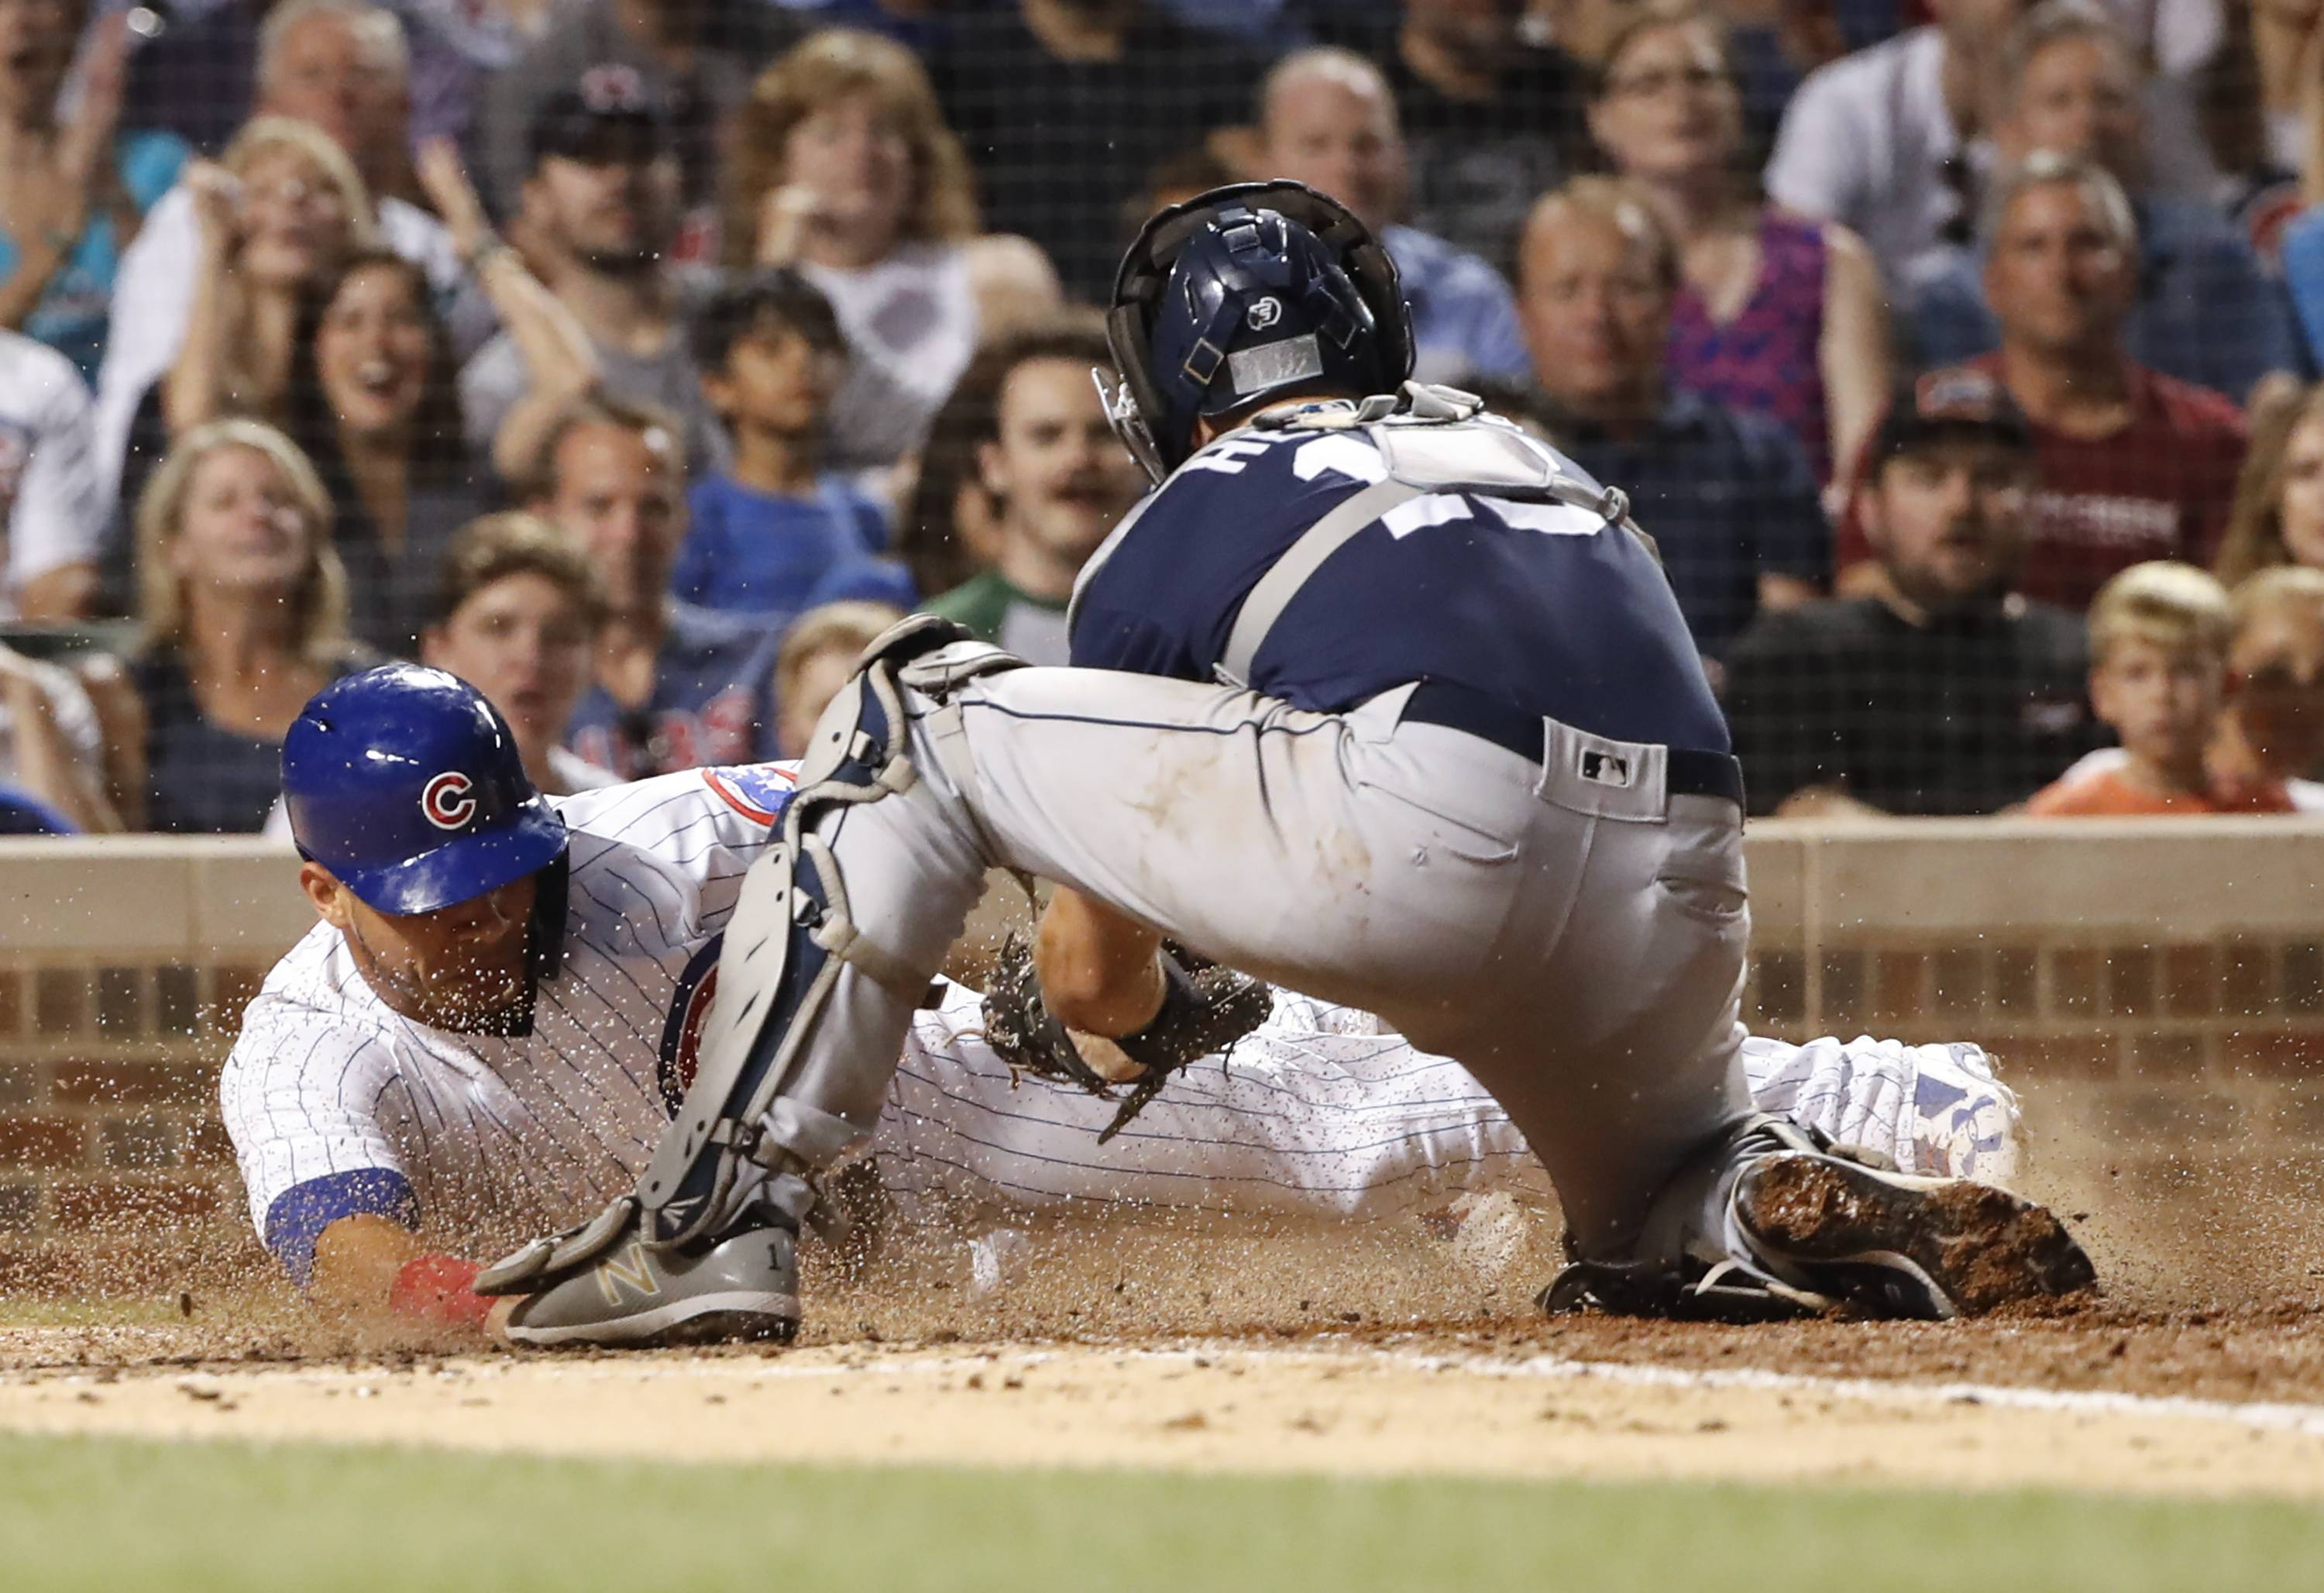 Chicago Cubs' Willson Contreras, left, scores as San Diego Padres' Austin Hedges tries to make the tag during the fifth inning on Thursday at Wrigley Field.